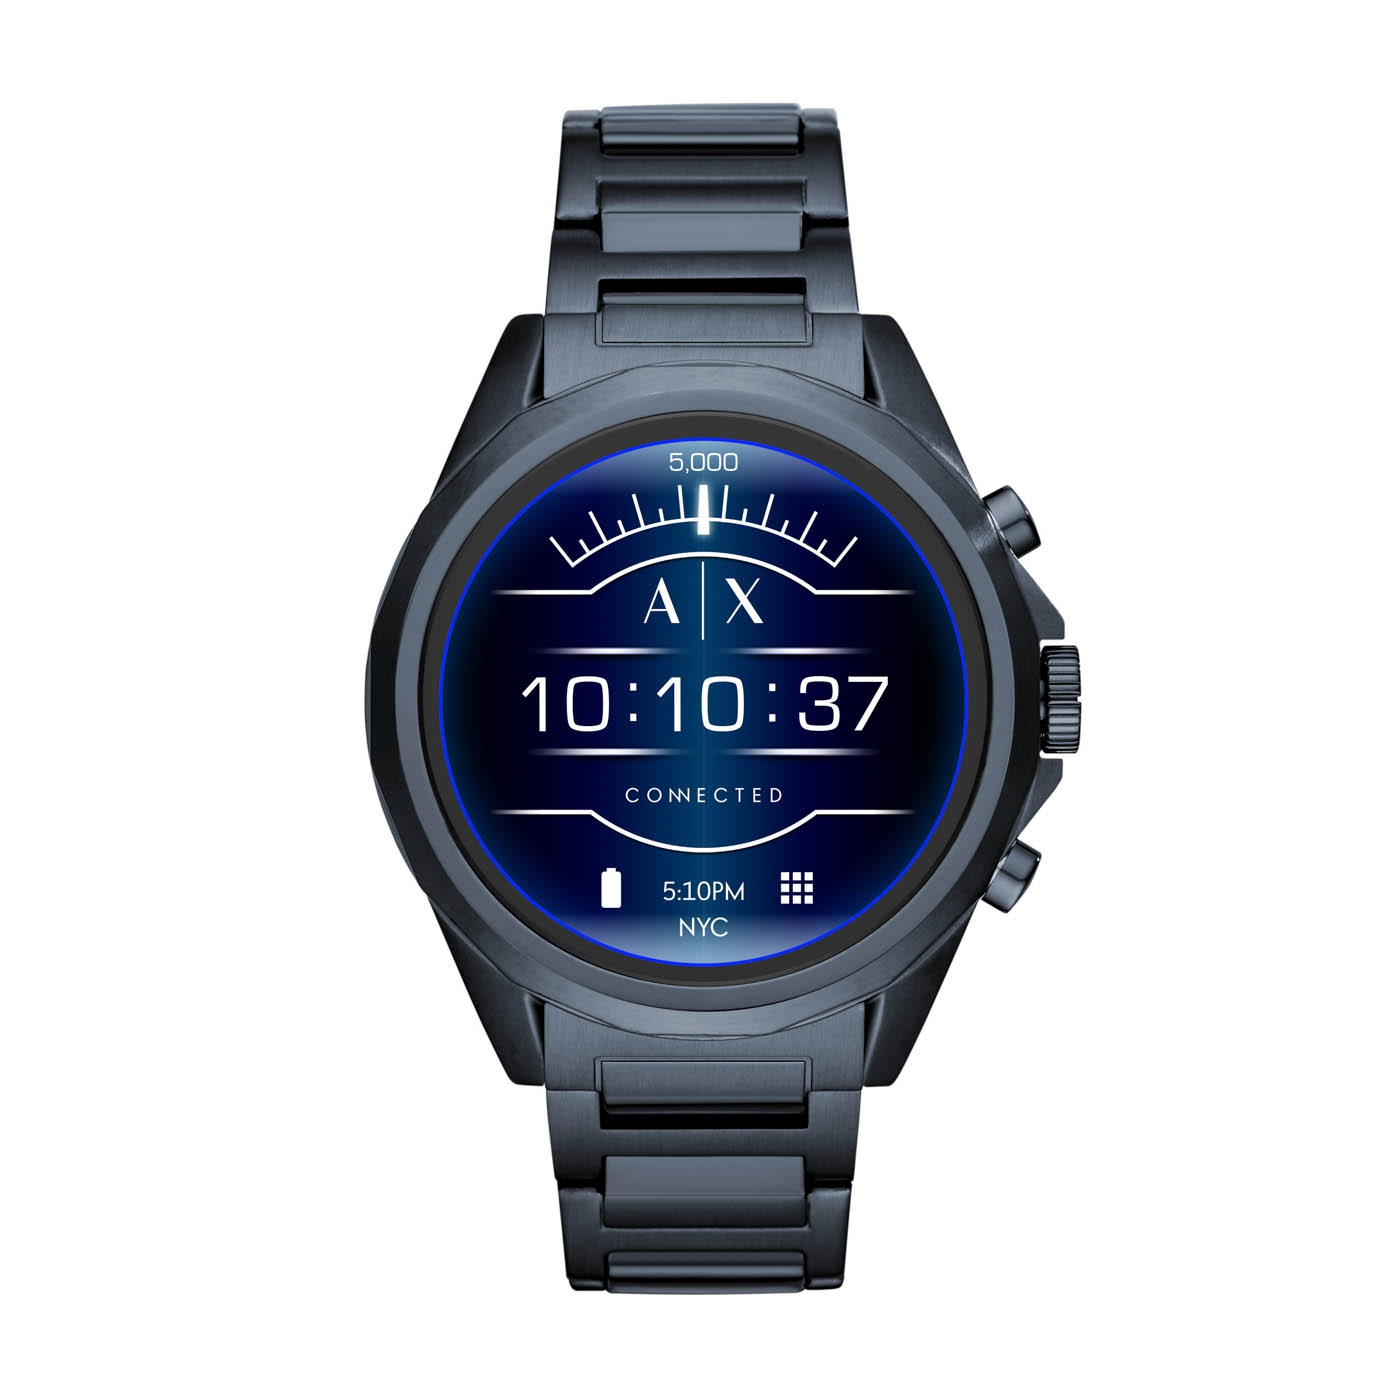 Immagine di Armani Exchange Connected Drexler Gen 4 Display Smartwatch AXT2003